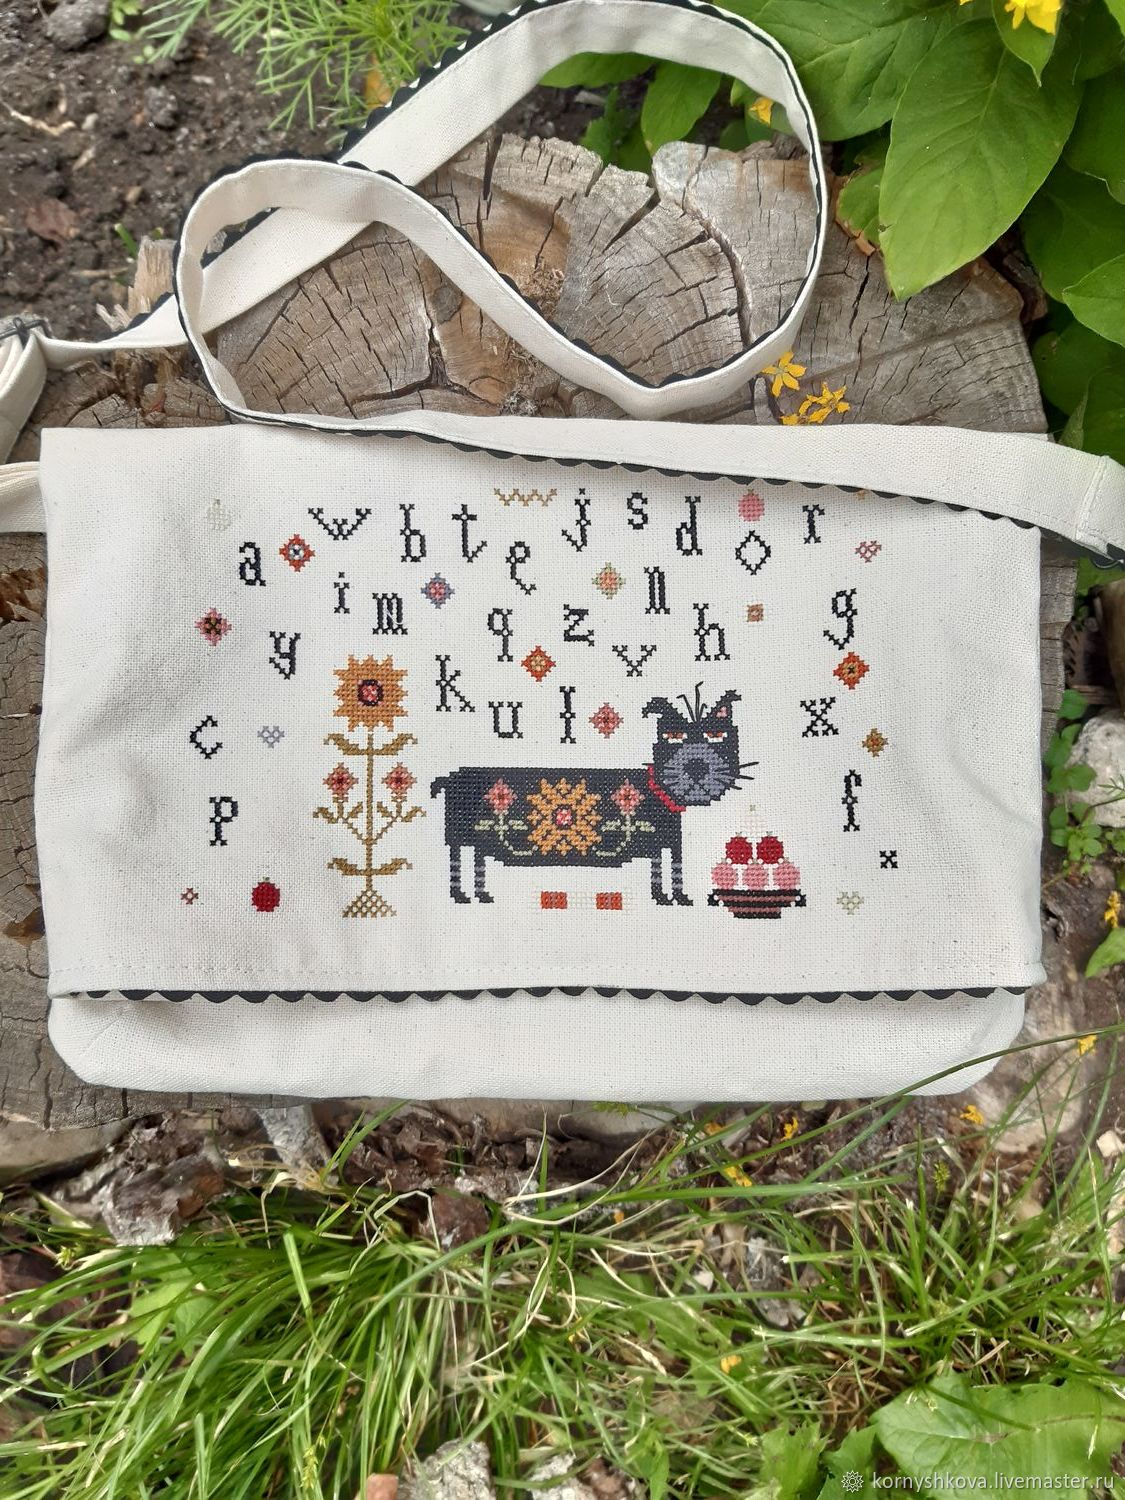 Clutch bag 'Without a cat and life is not the same', Clutches, Saransk,  Фото №1